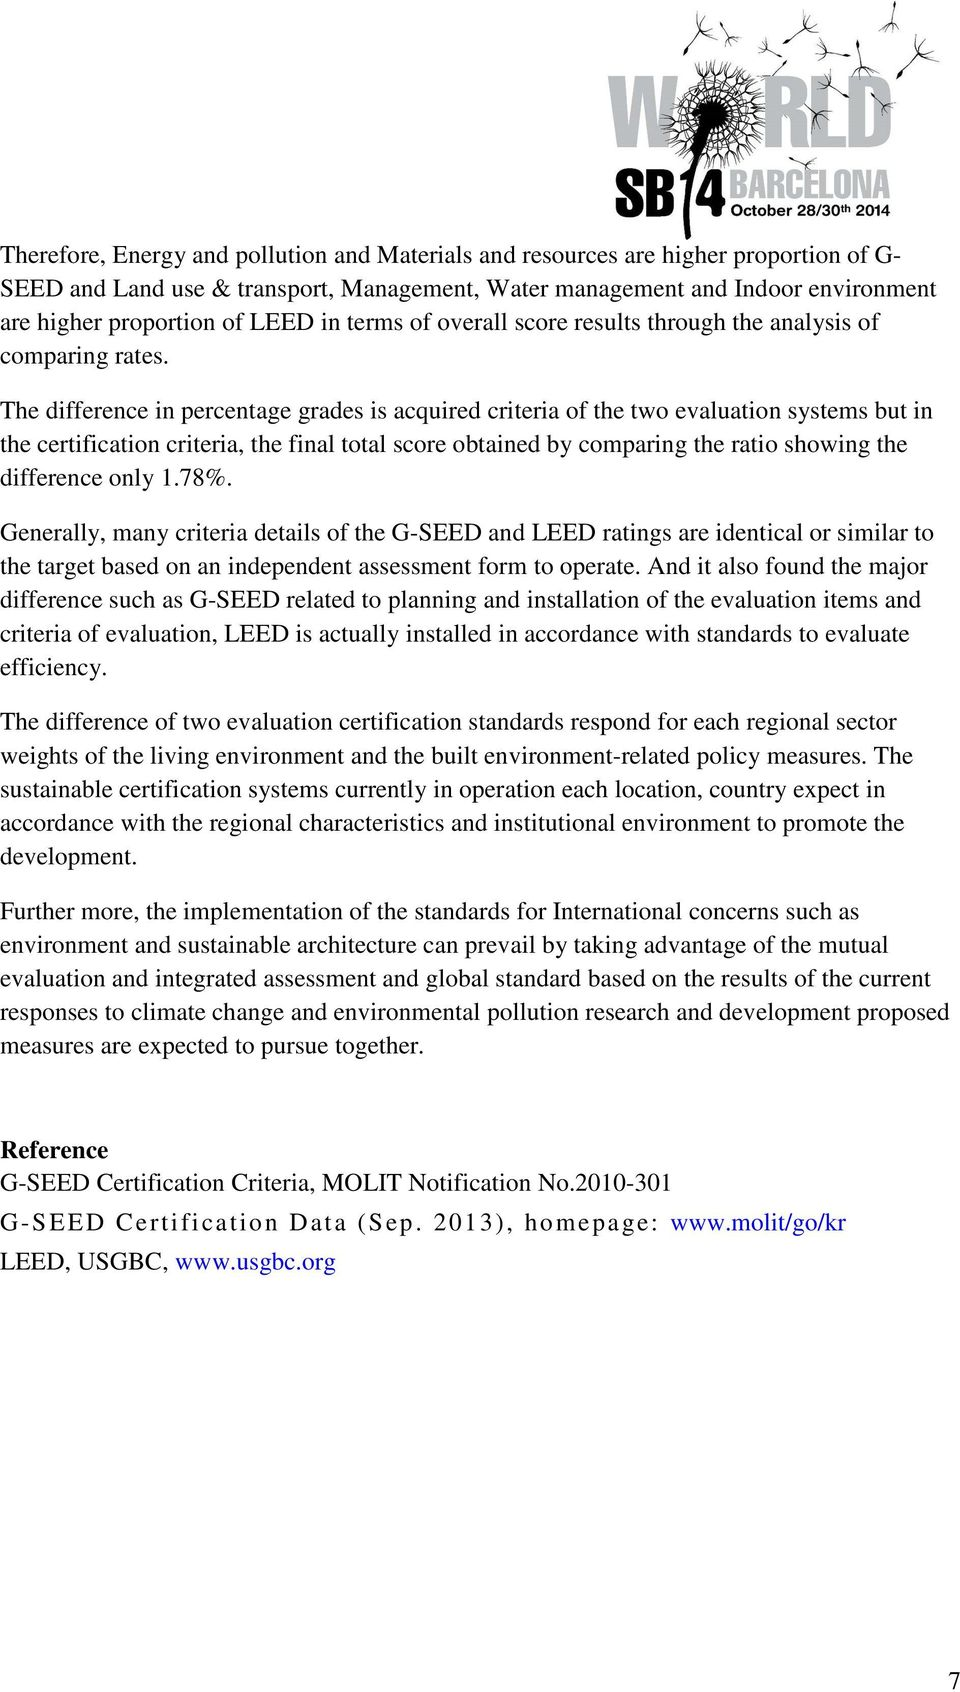 Comparison Criteria And Certified Scores Between G Seed And Leed